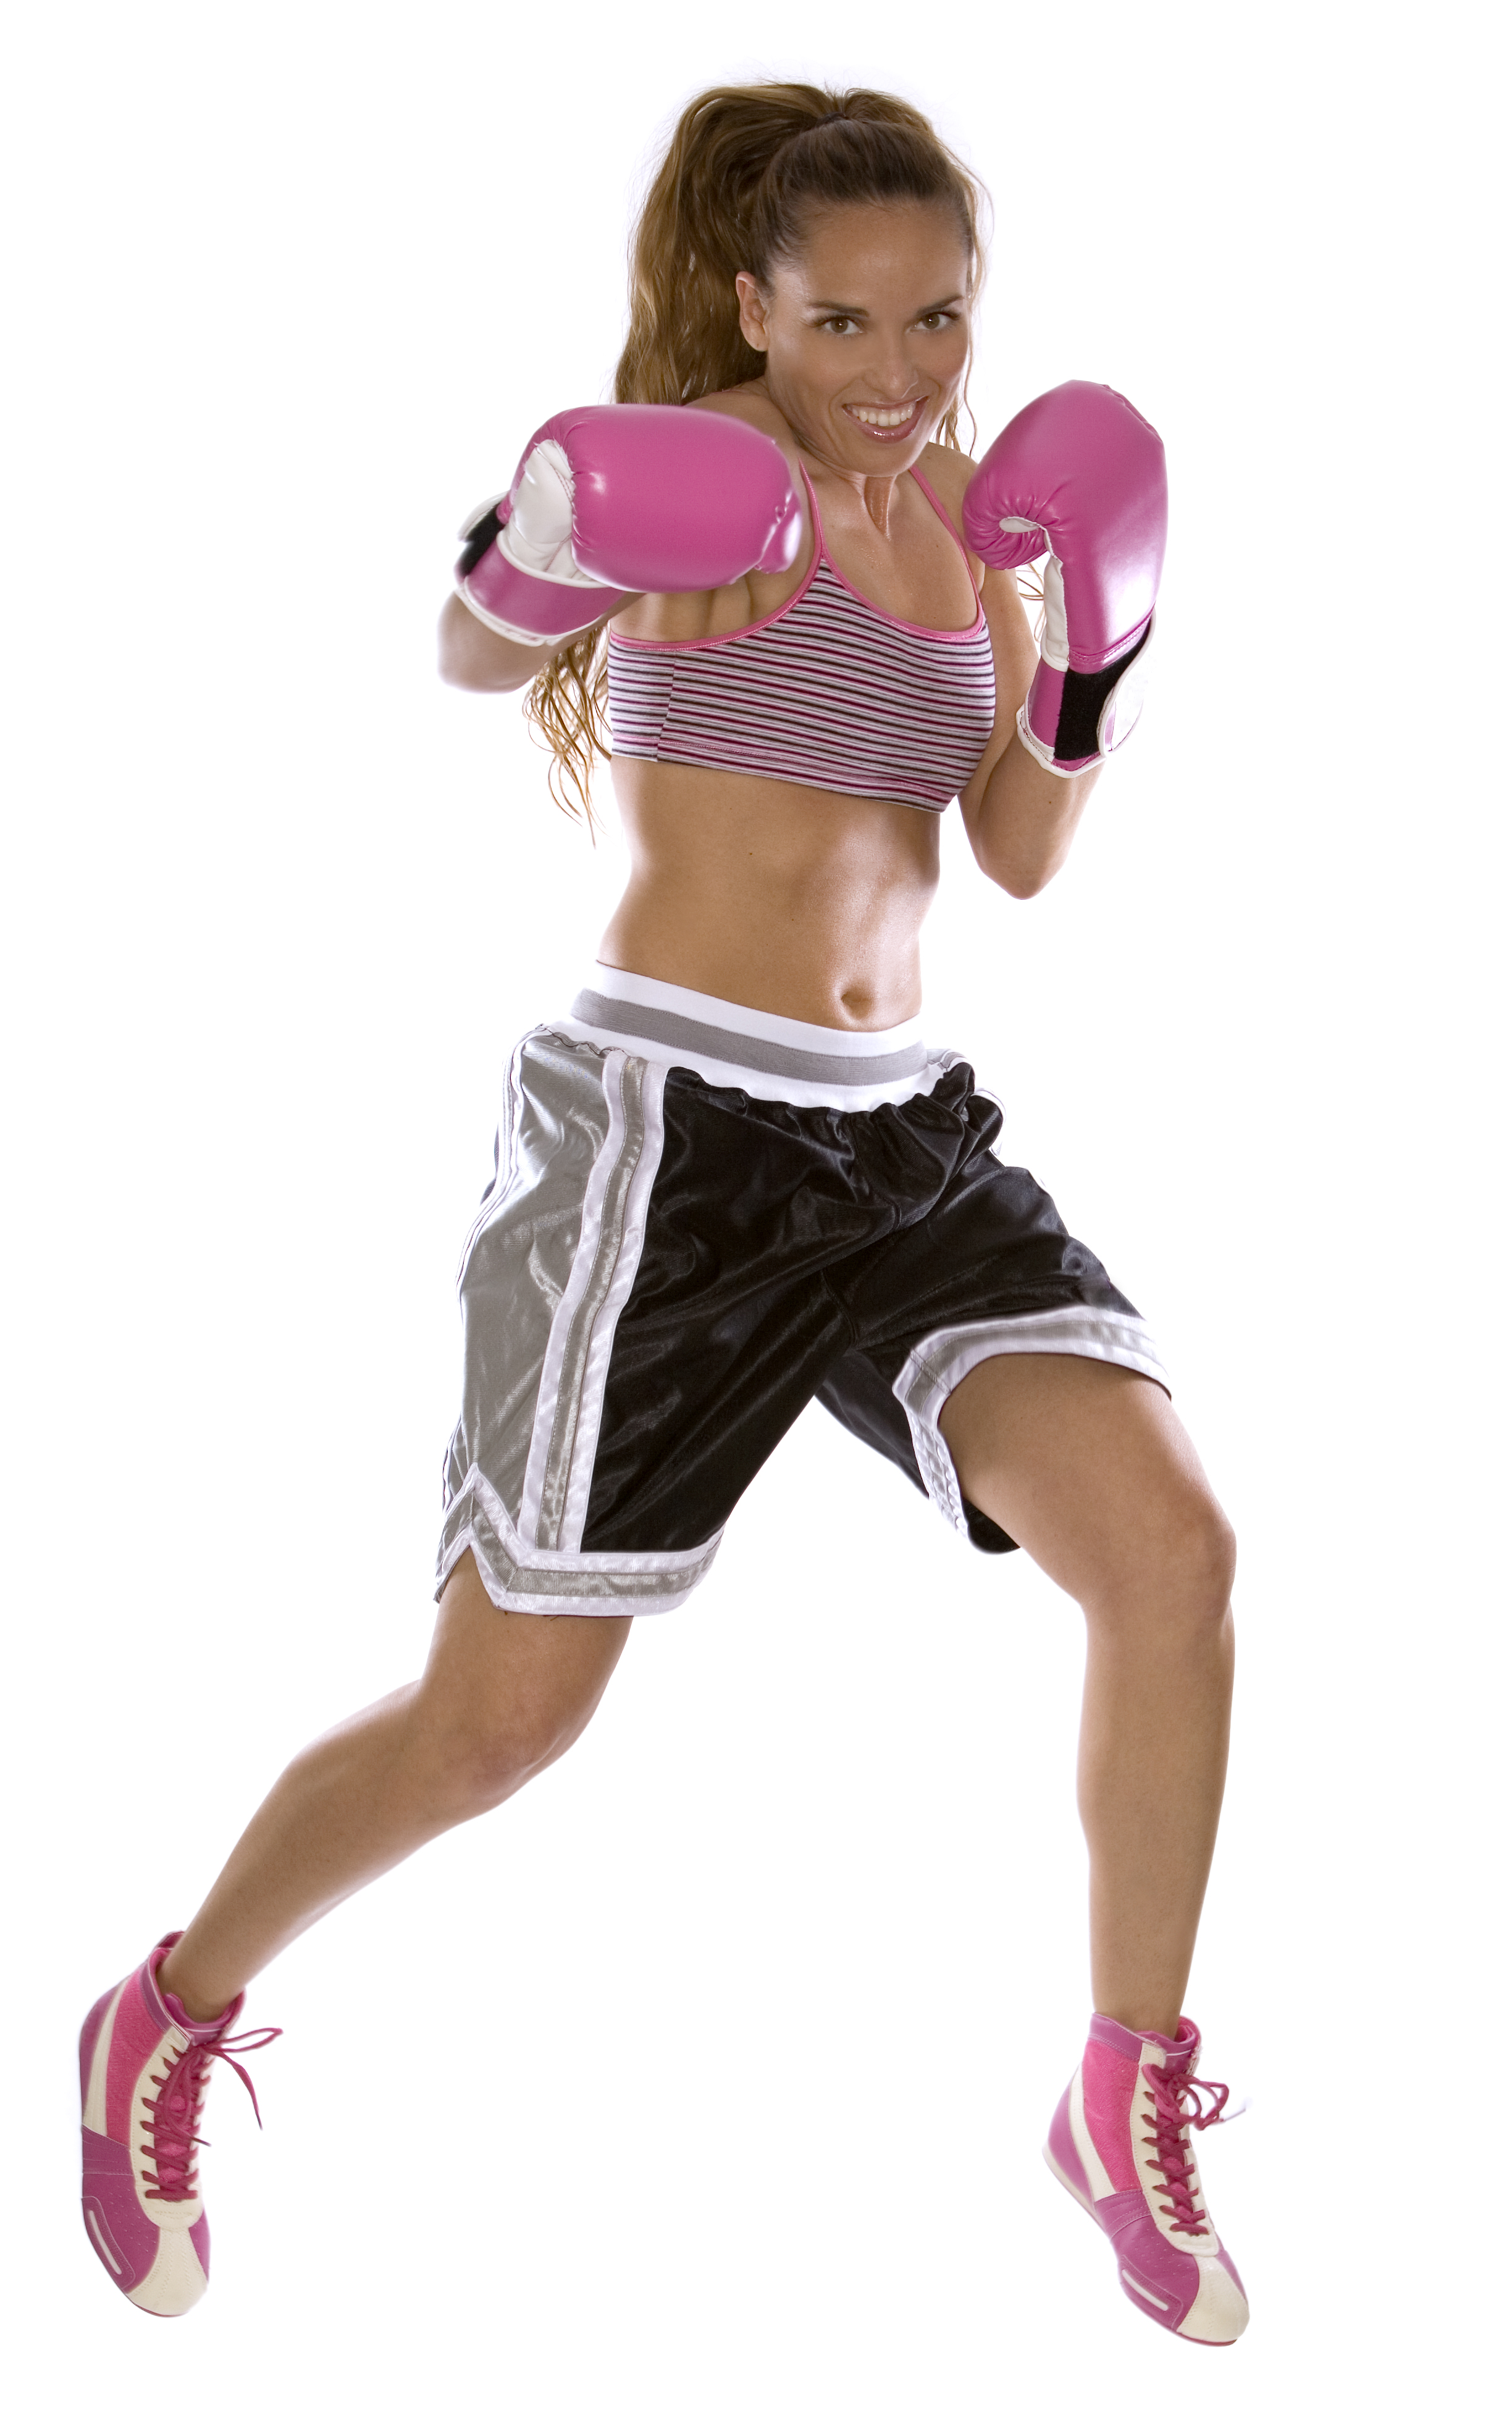 Kimberly Edwards boxing - photo by Zdenka Micka, MUA & Hair by Kimberly Edwards, Styling by Kimberly Edwards